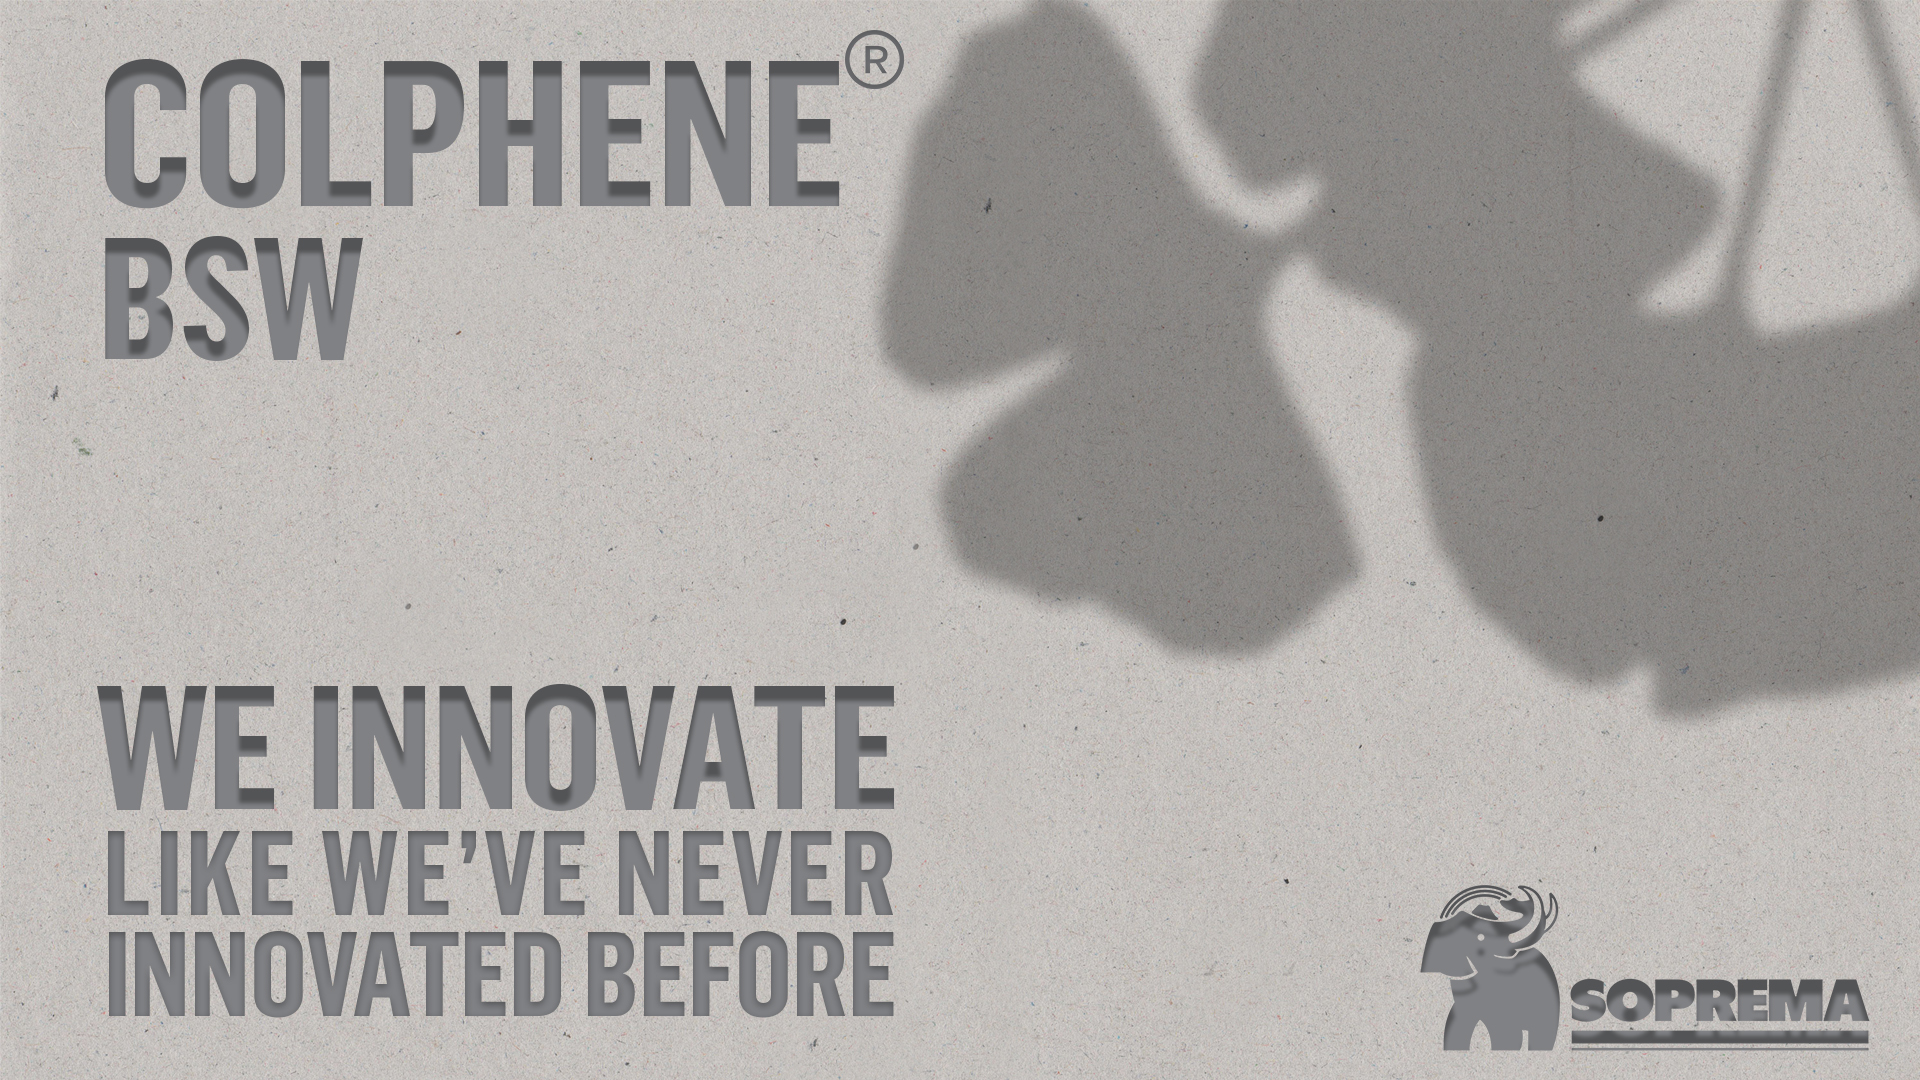 THE NEW COLPHENE BSW